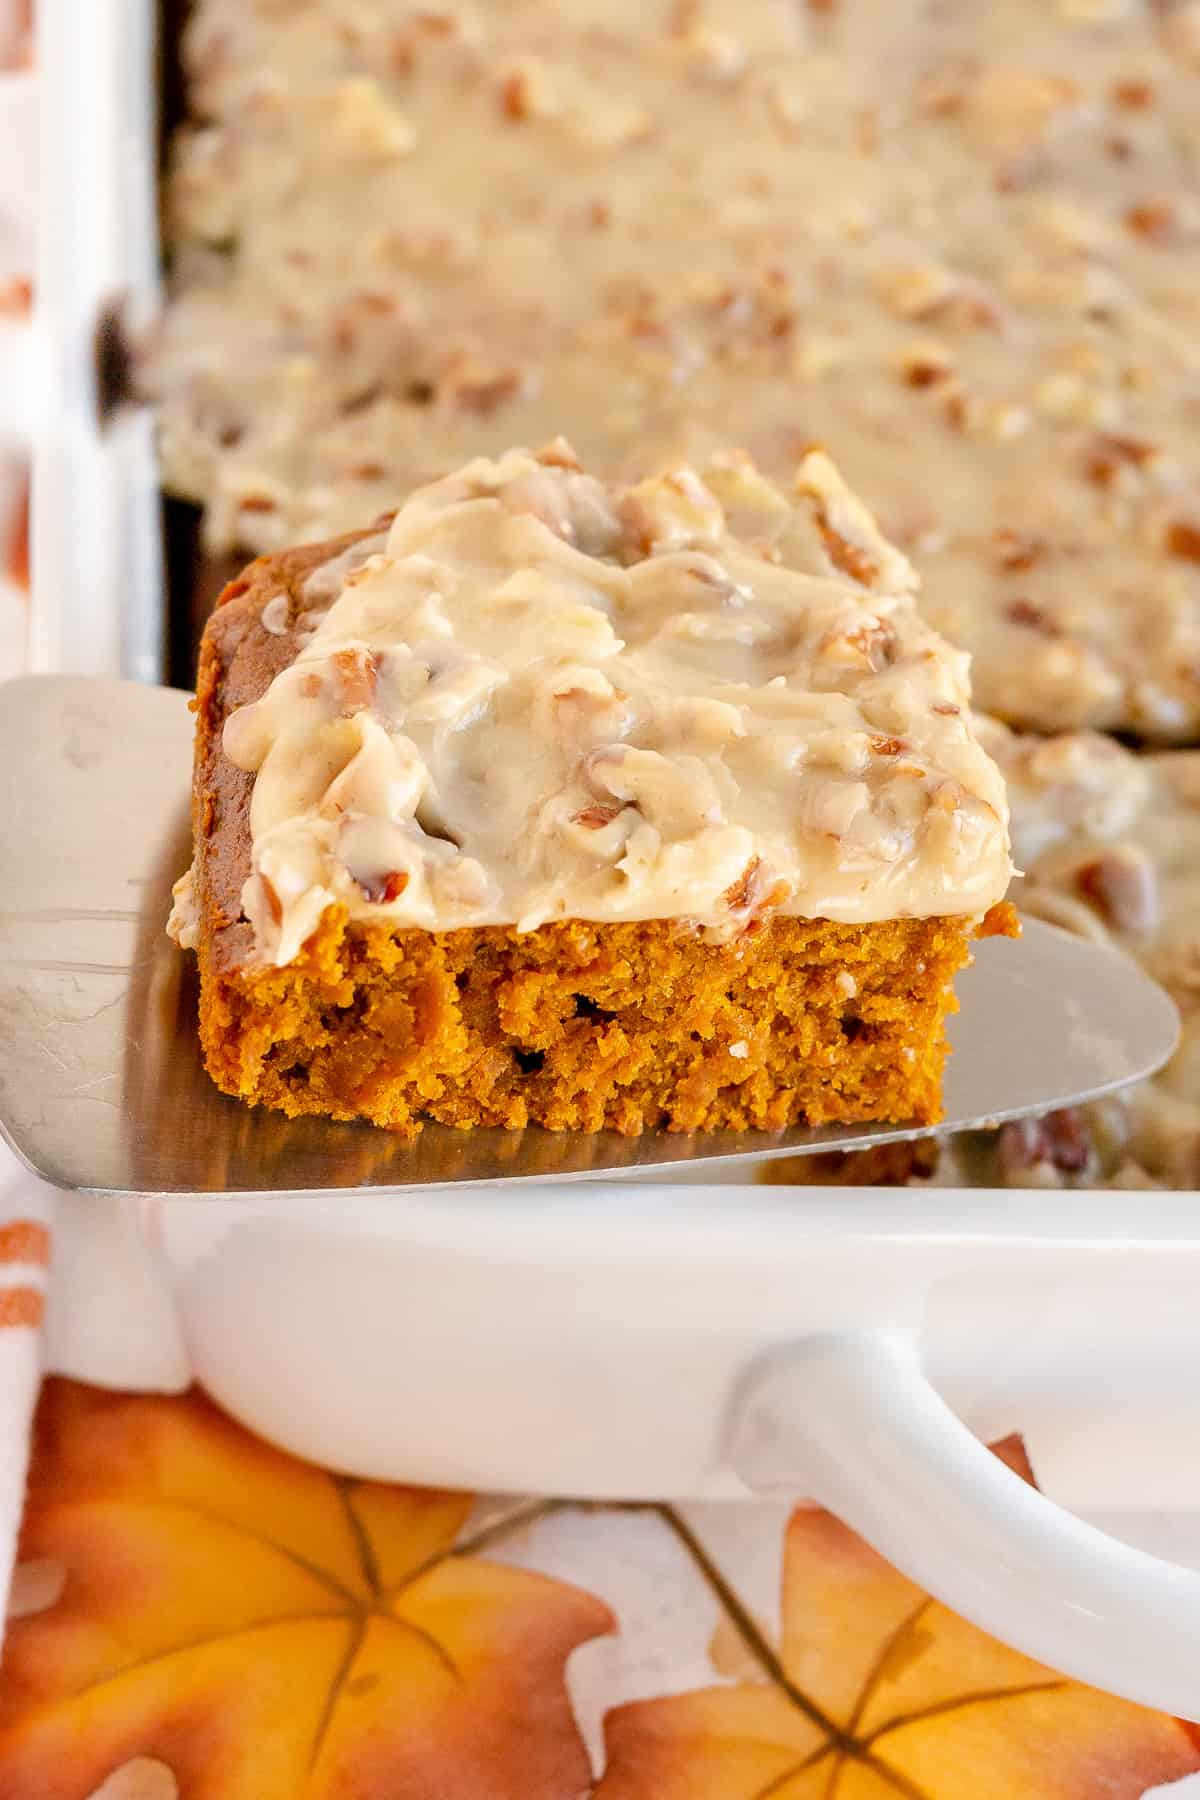 A spatula lifts a slice of pumpkin gingerbread from a baking dish.